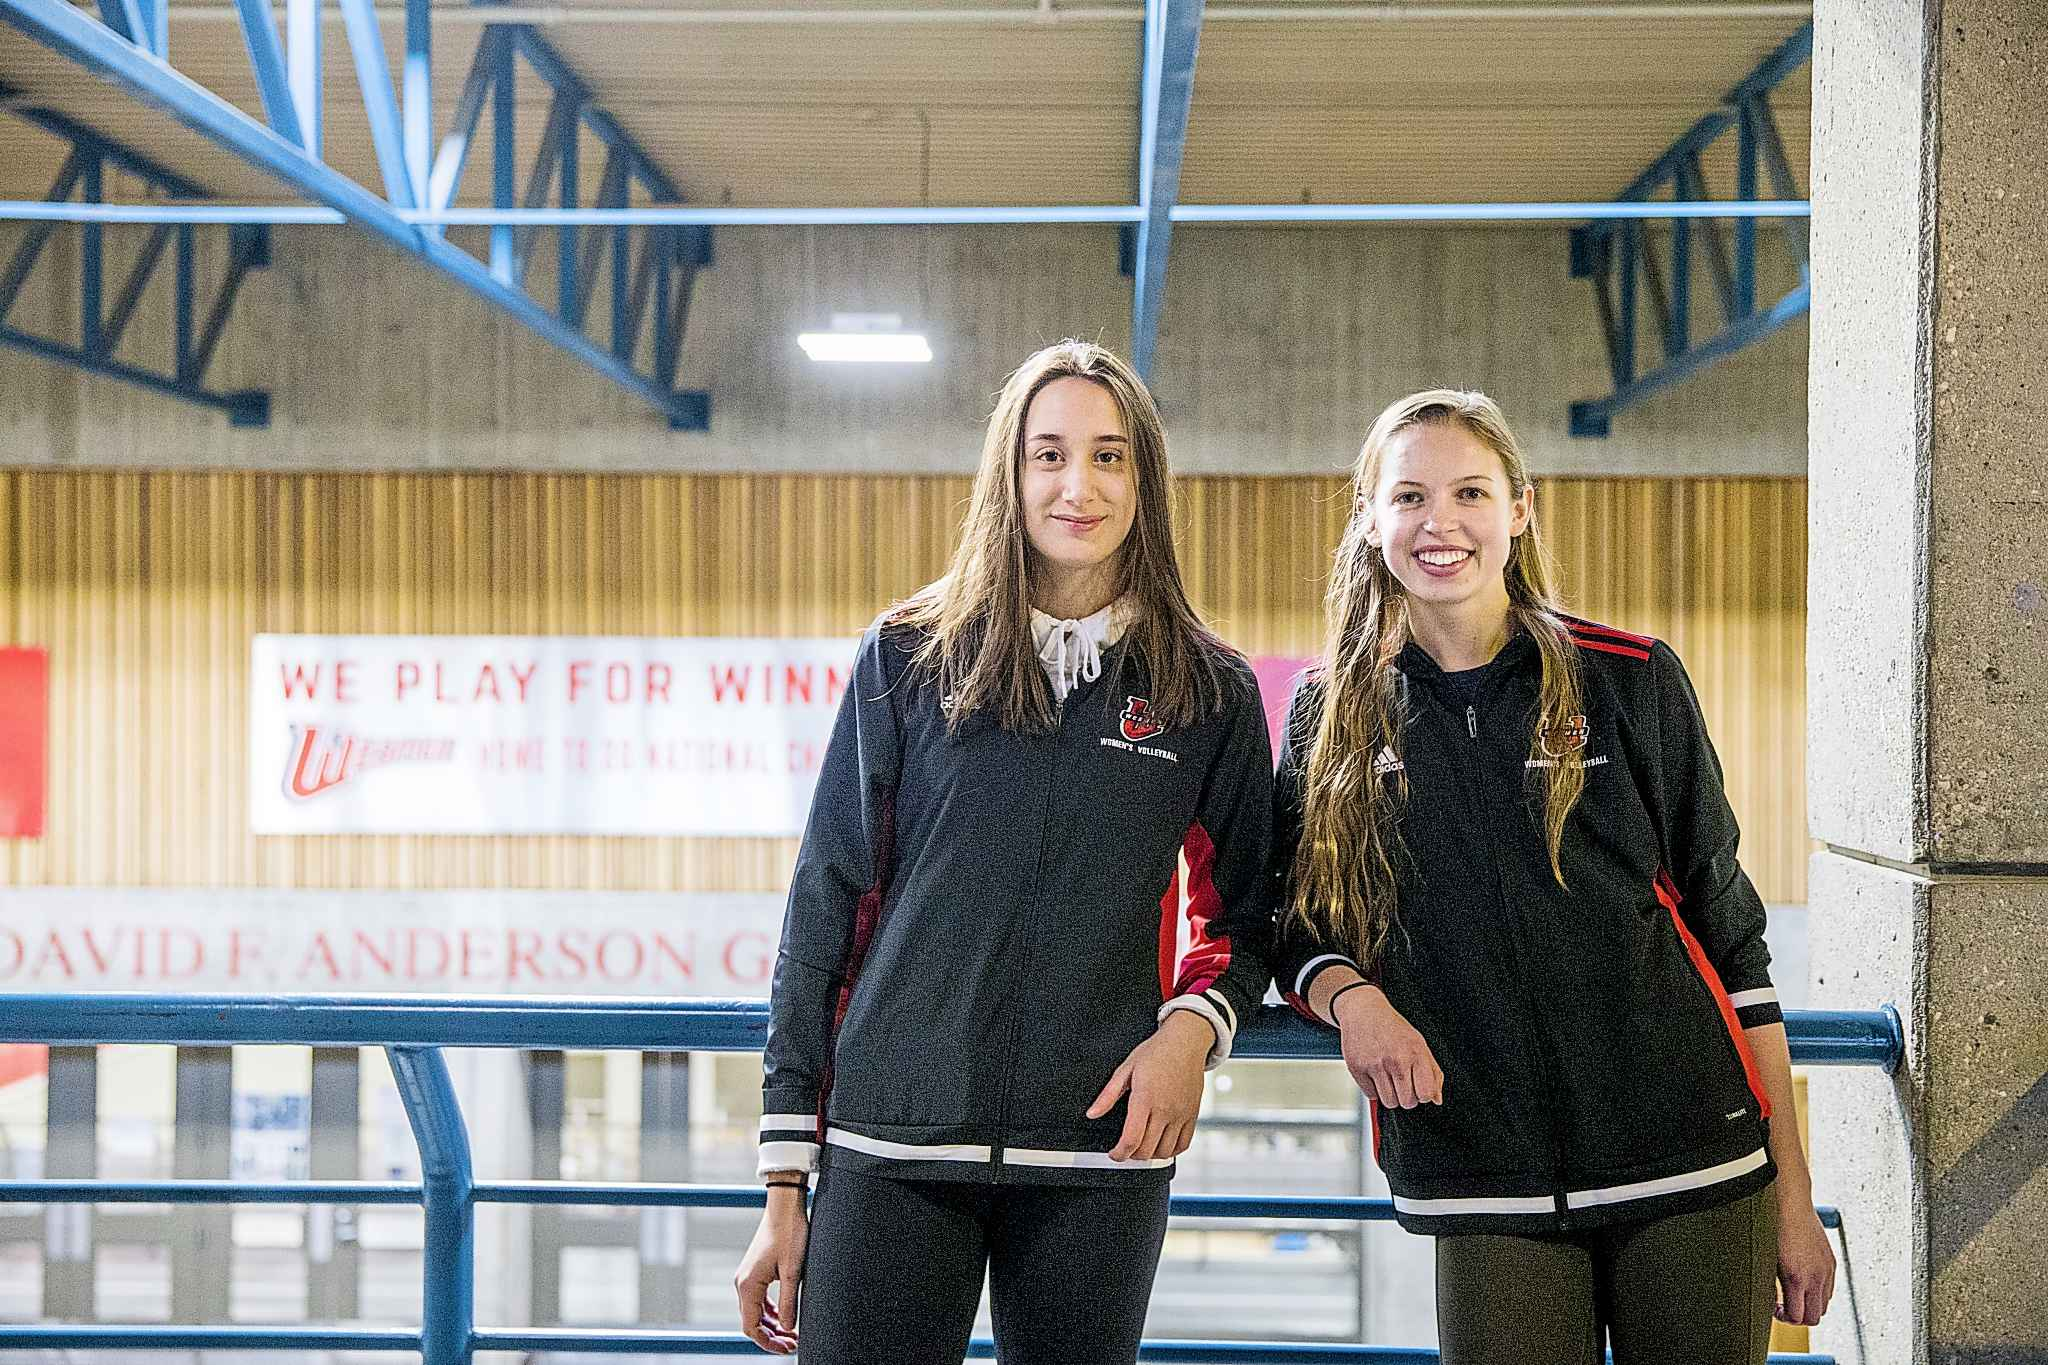 Wesmen volleyball players Selva Planincic (left) and Rylie Dickson have already won more games this year at the midpoint compared to all of last season. (Mikaela MacKenzie / Winnipeg Free Press)